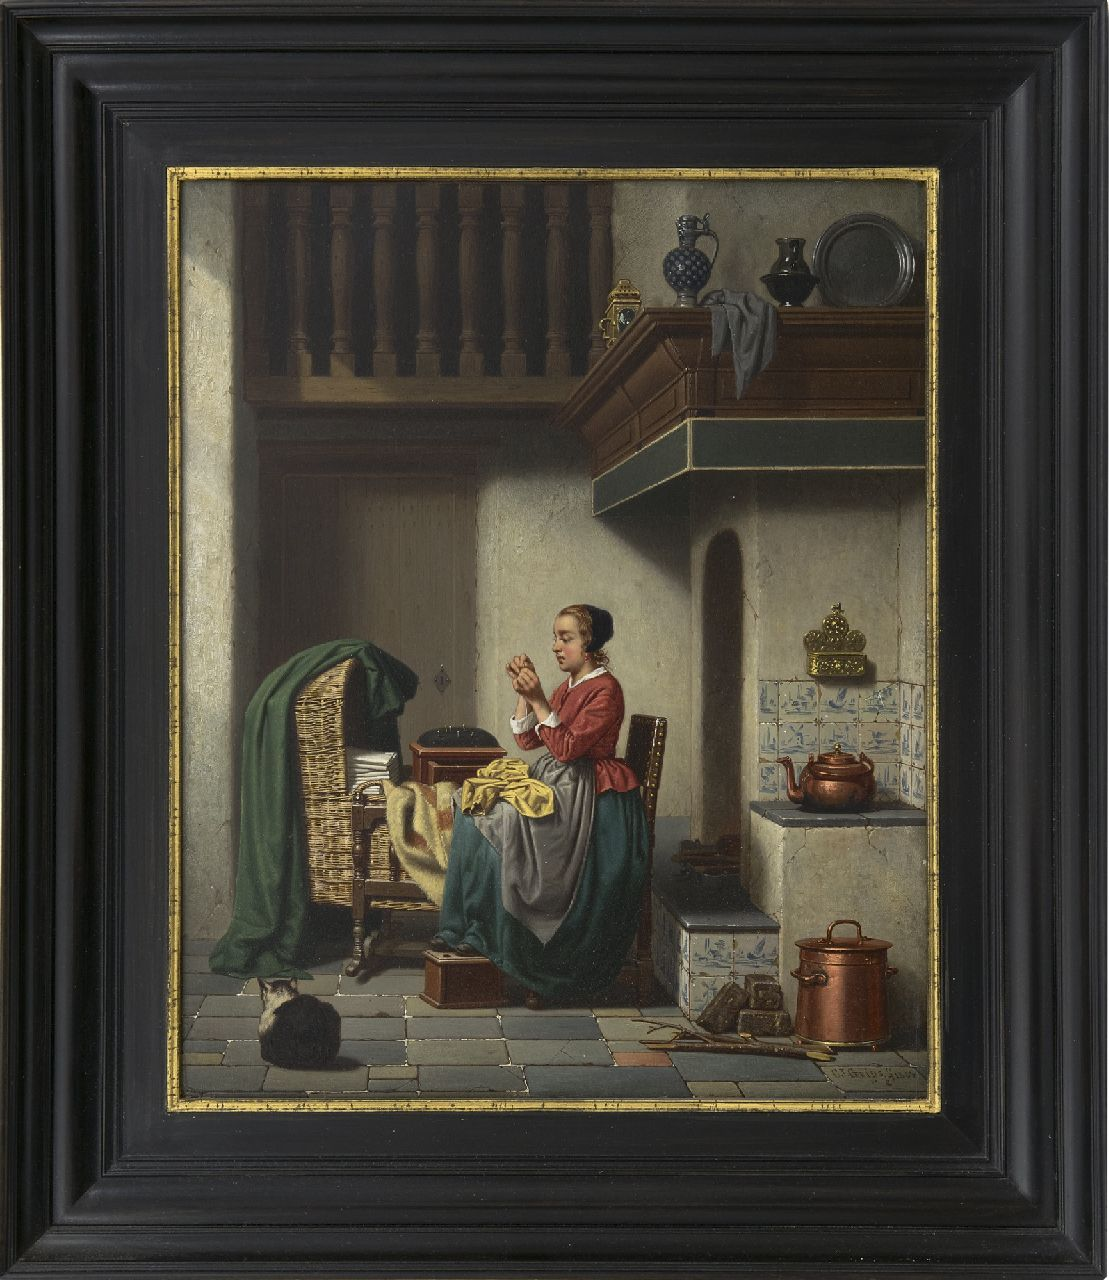 Grips C.J.  | Carel Jozeph Grips | Paintings offered for sale | Mending the garments, oil on panel 36.0 x 29.3 cm, signed l.r. and dated 1864